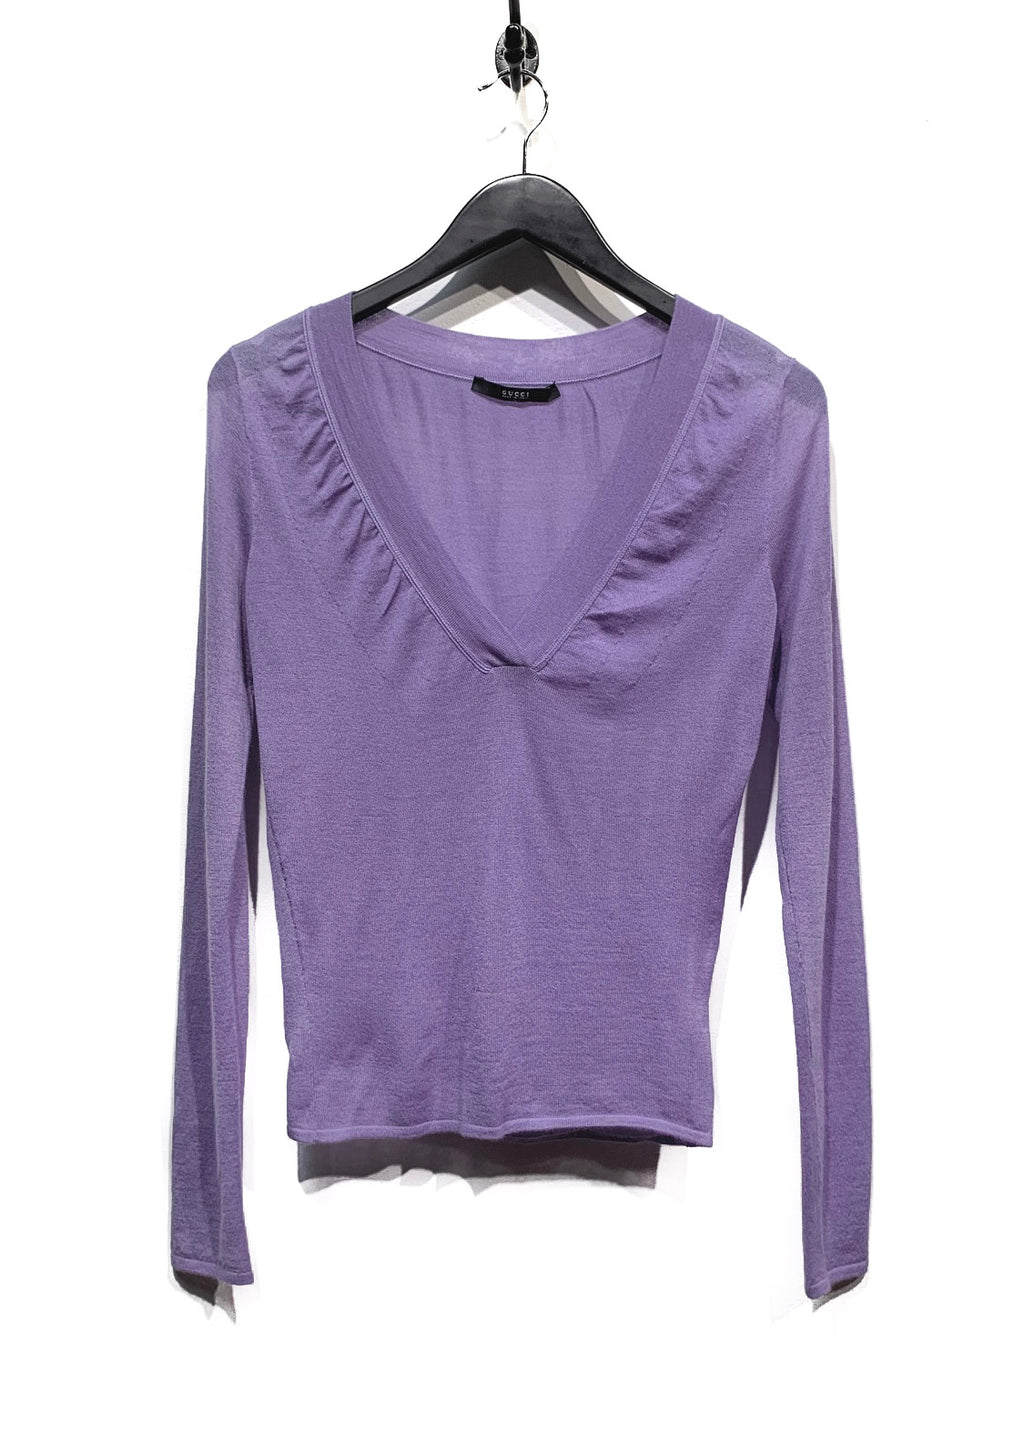 Gucci Lilac Cashmere V-Neck Sweater